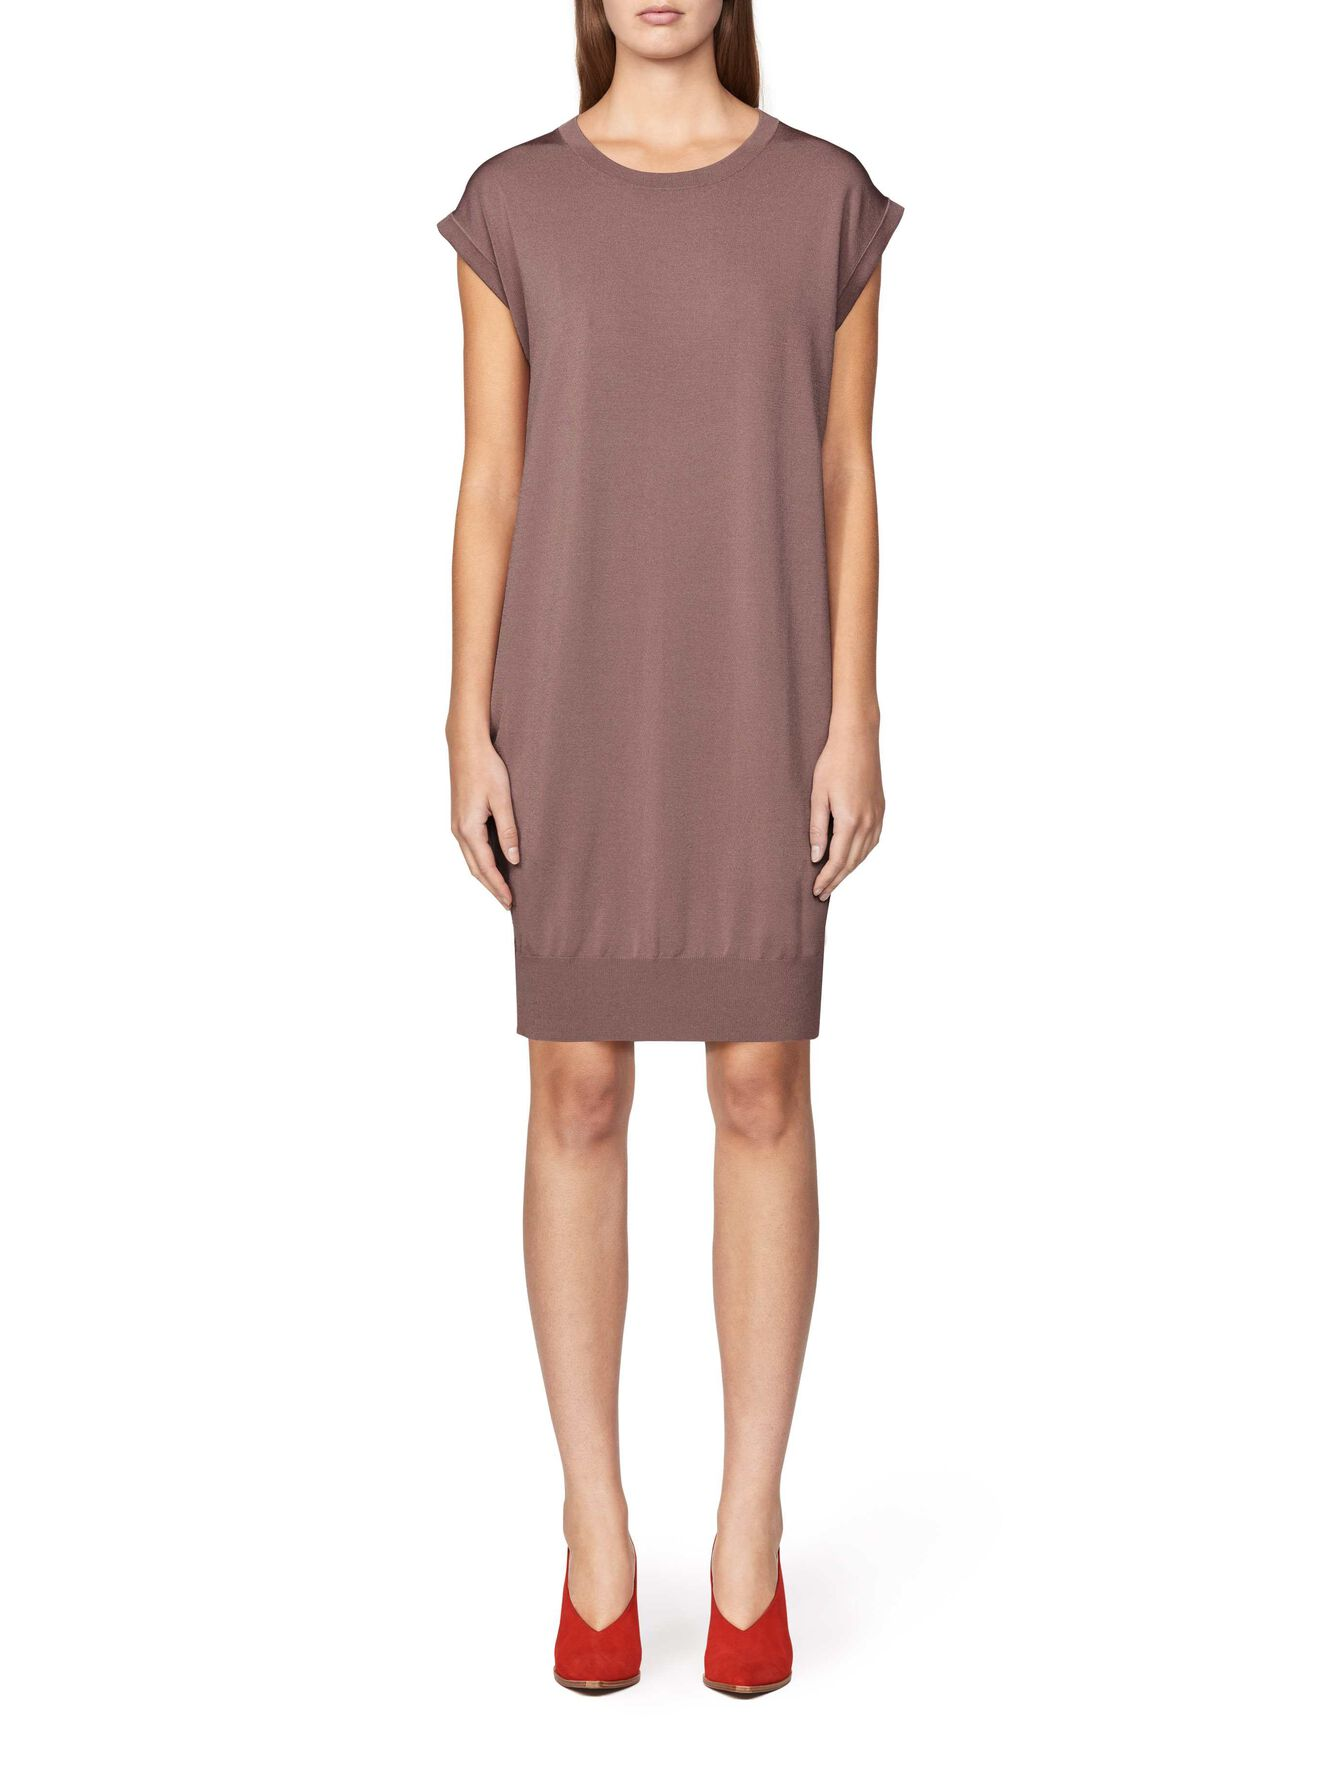 Palame Dress in Mellow Mulberry from Tiger of Sweden